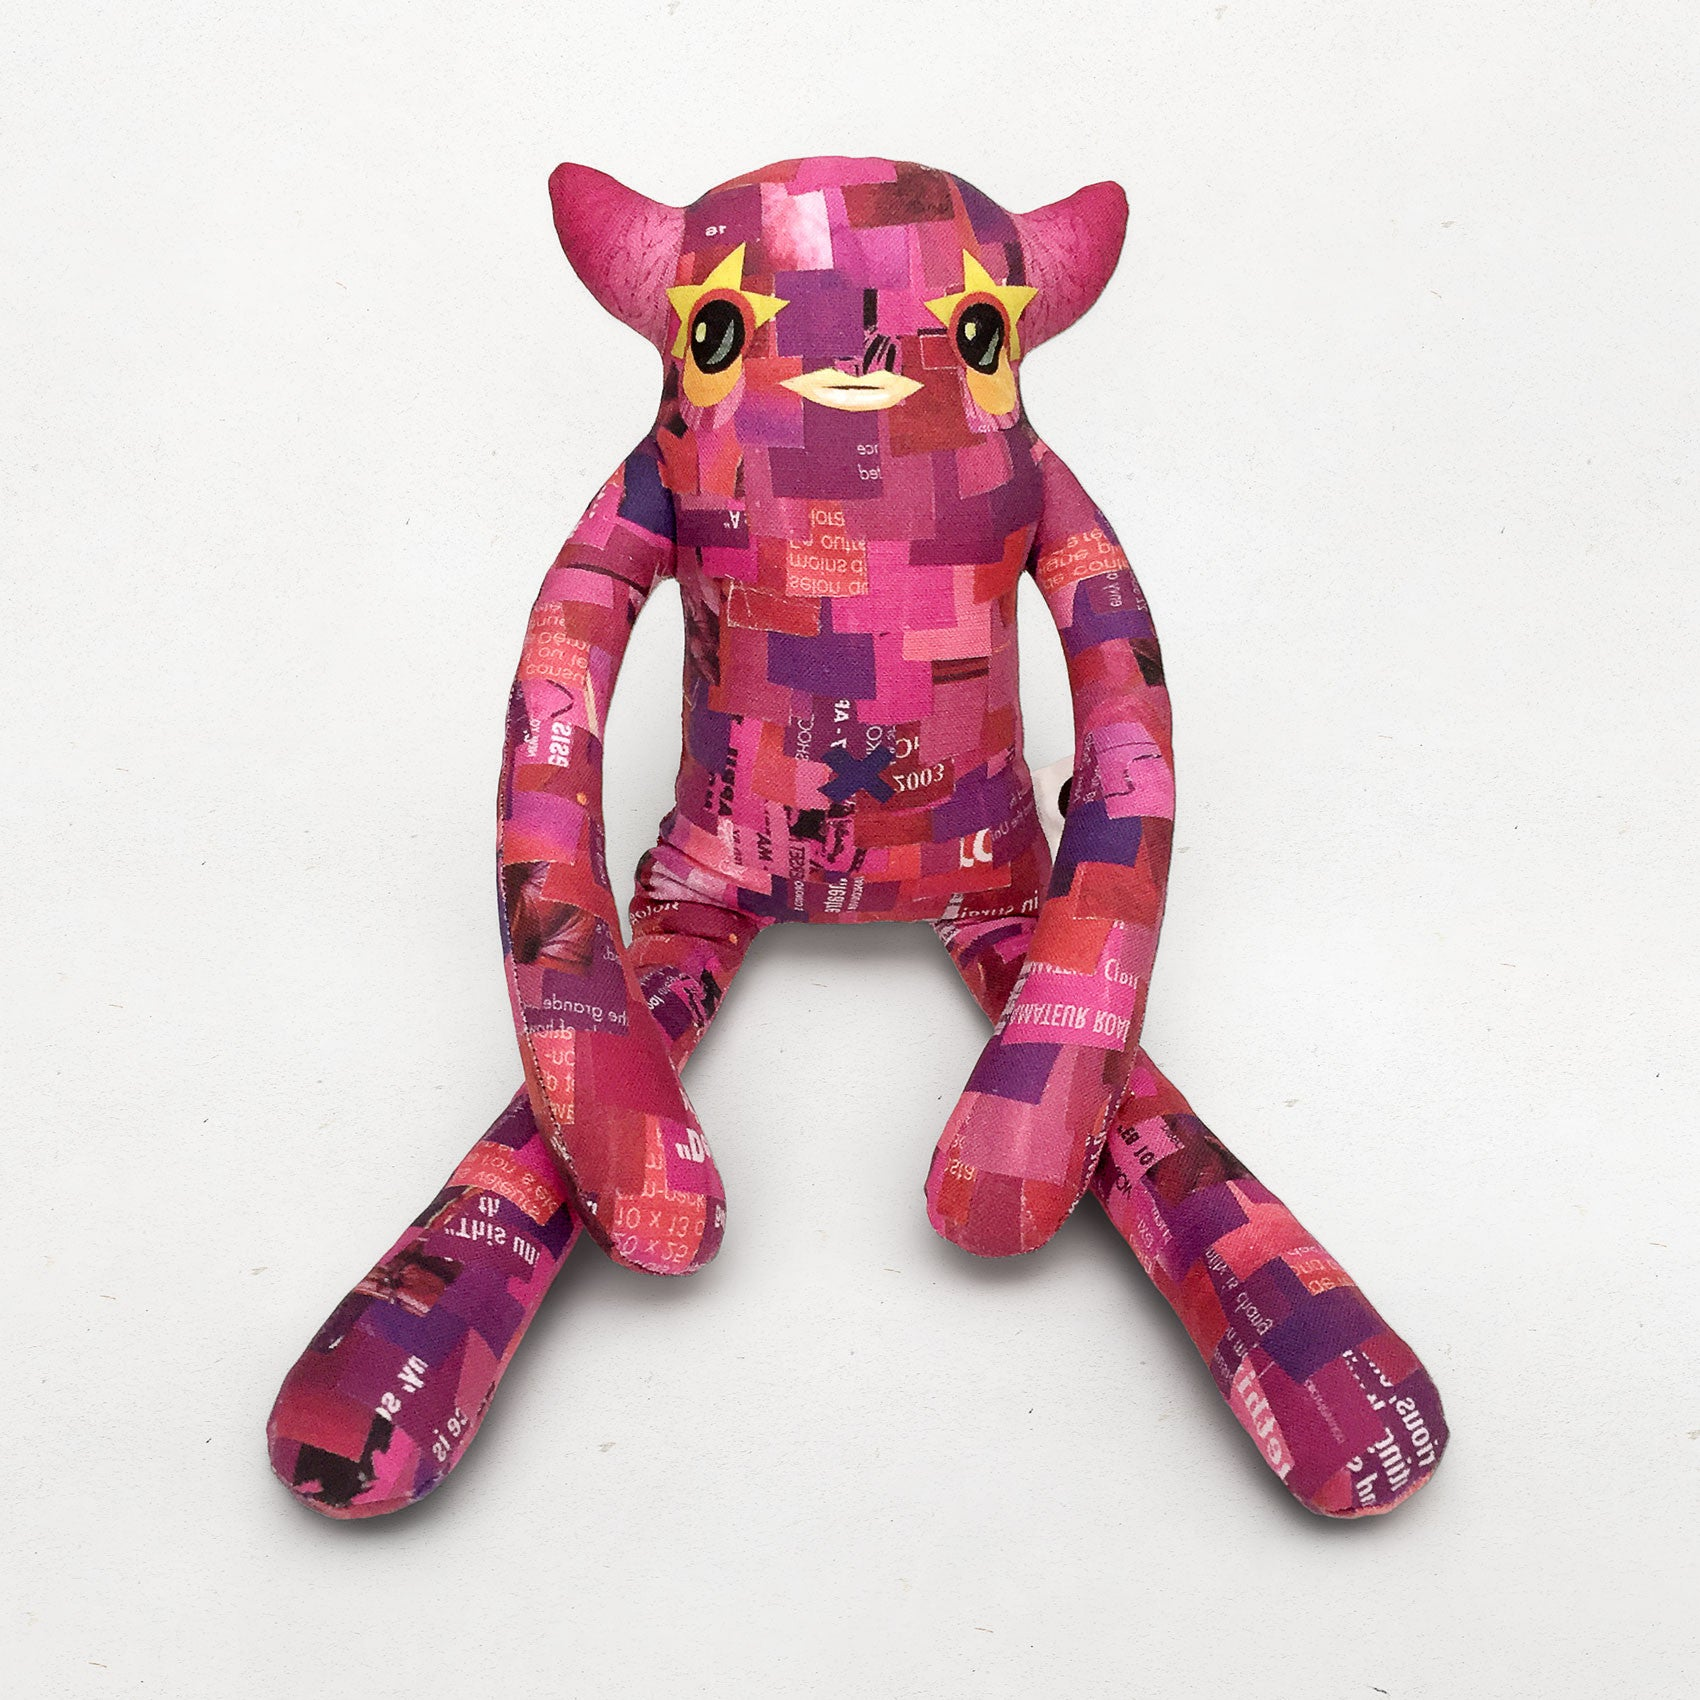 Charlene - Papercut Monsters - Handmade Stuffed Toy